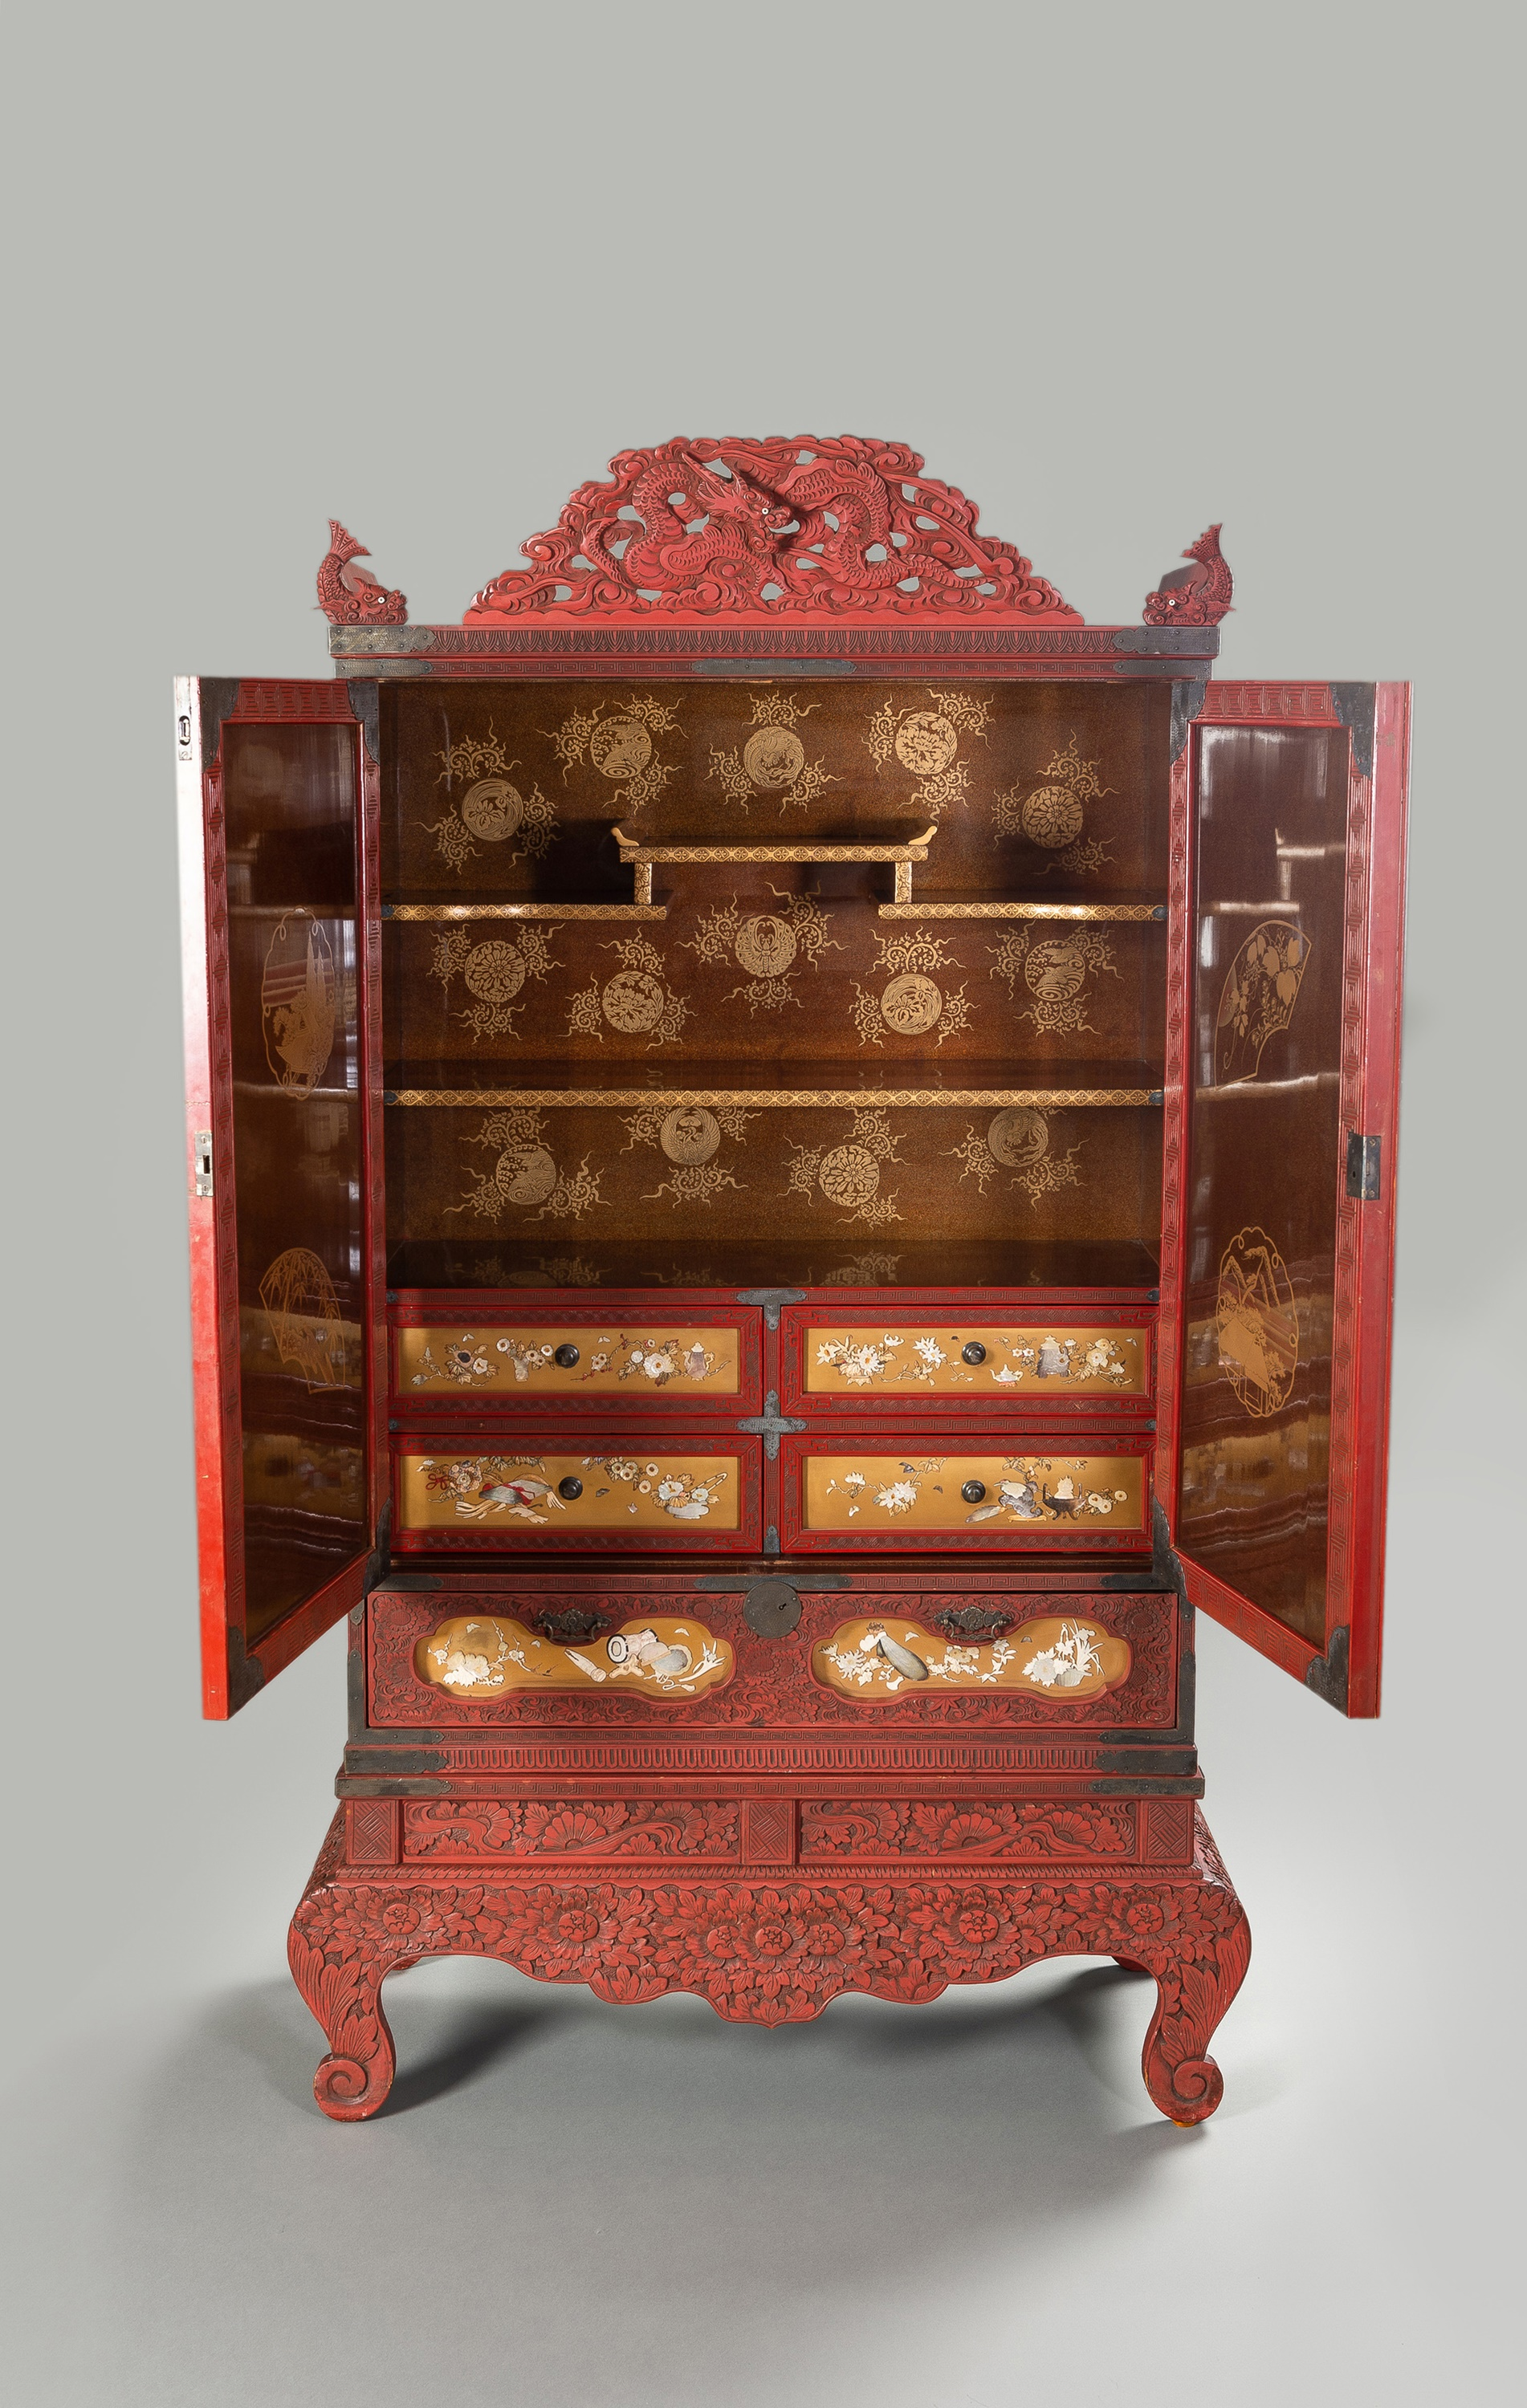 A LARGE AND IMPRESSIVE LACQUER AND SHIBAYAMA CABINET - Image 2 of 2